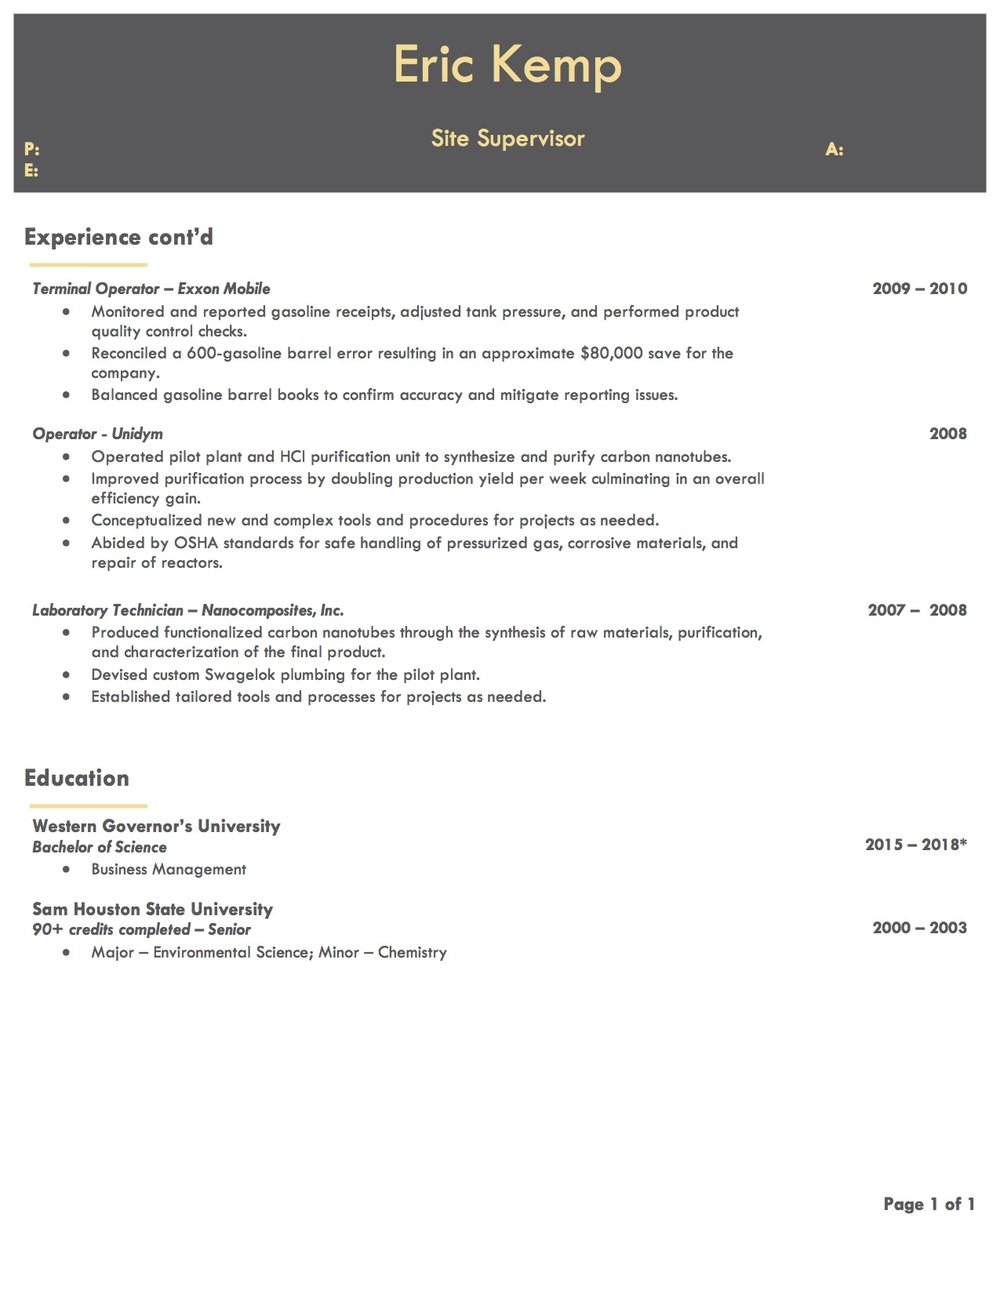 Client Resume #5 pg 2. Click to enlarge.